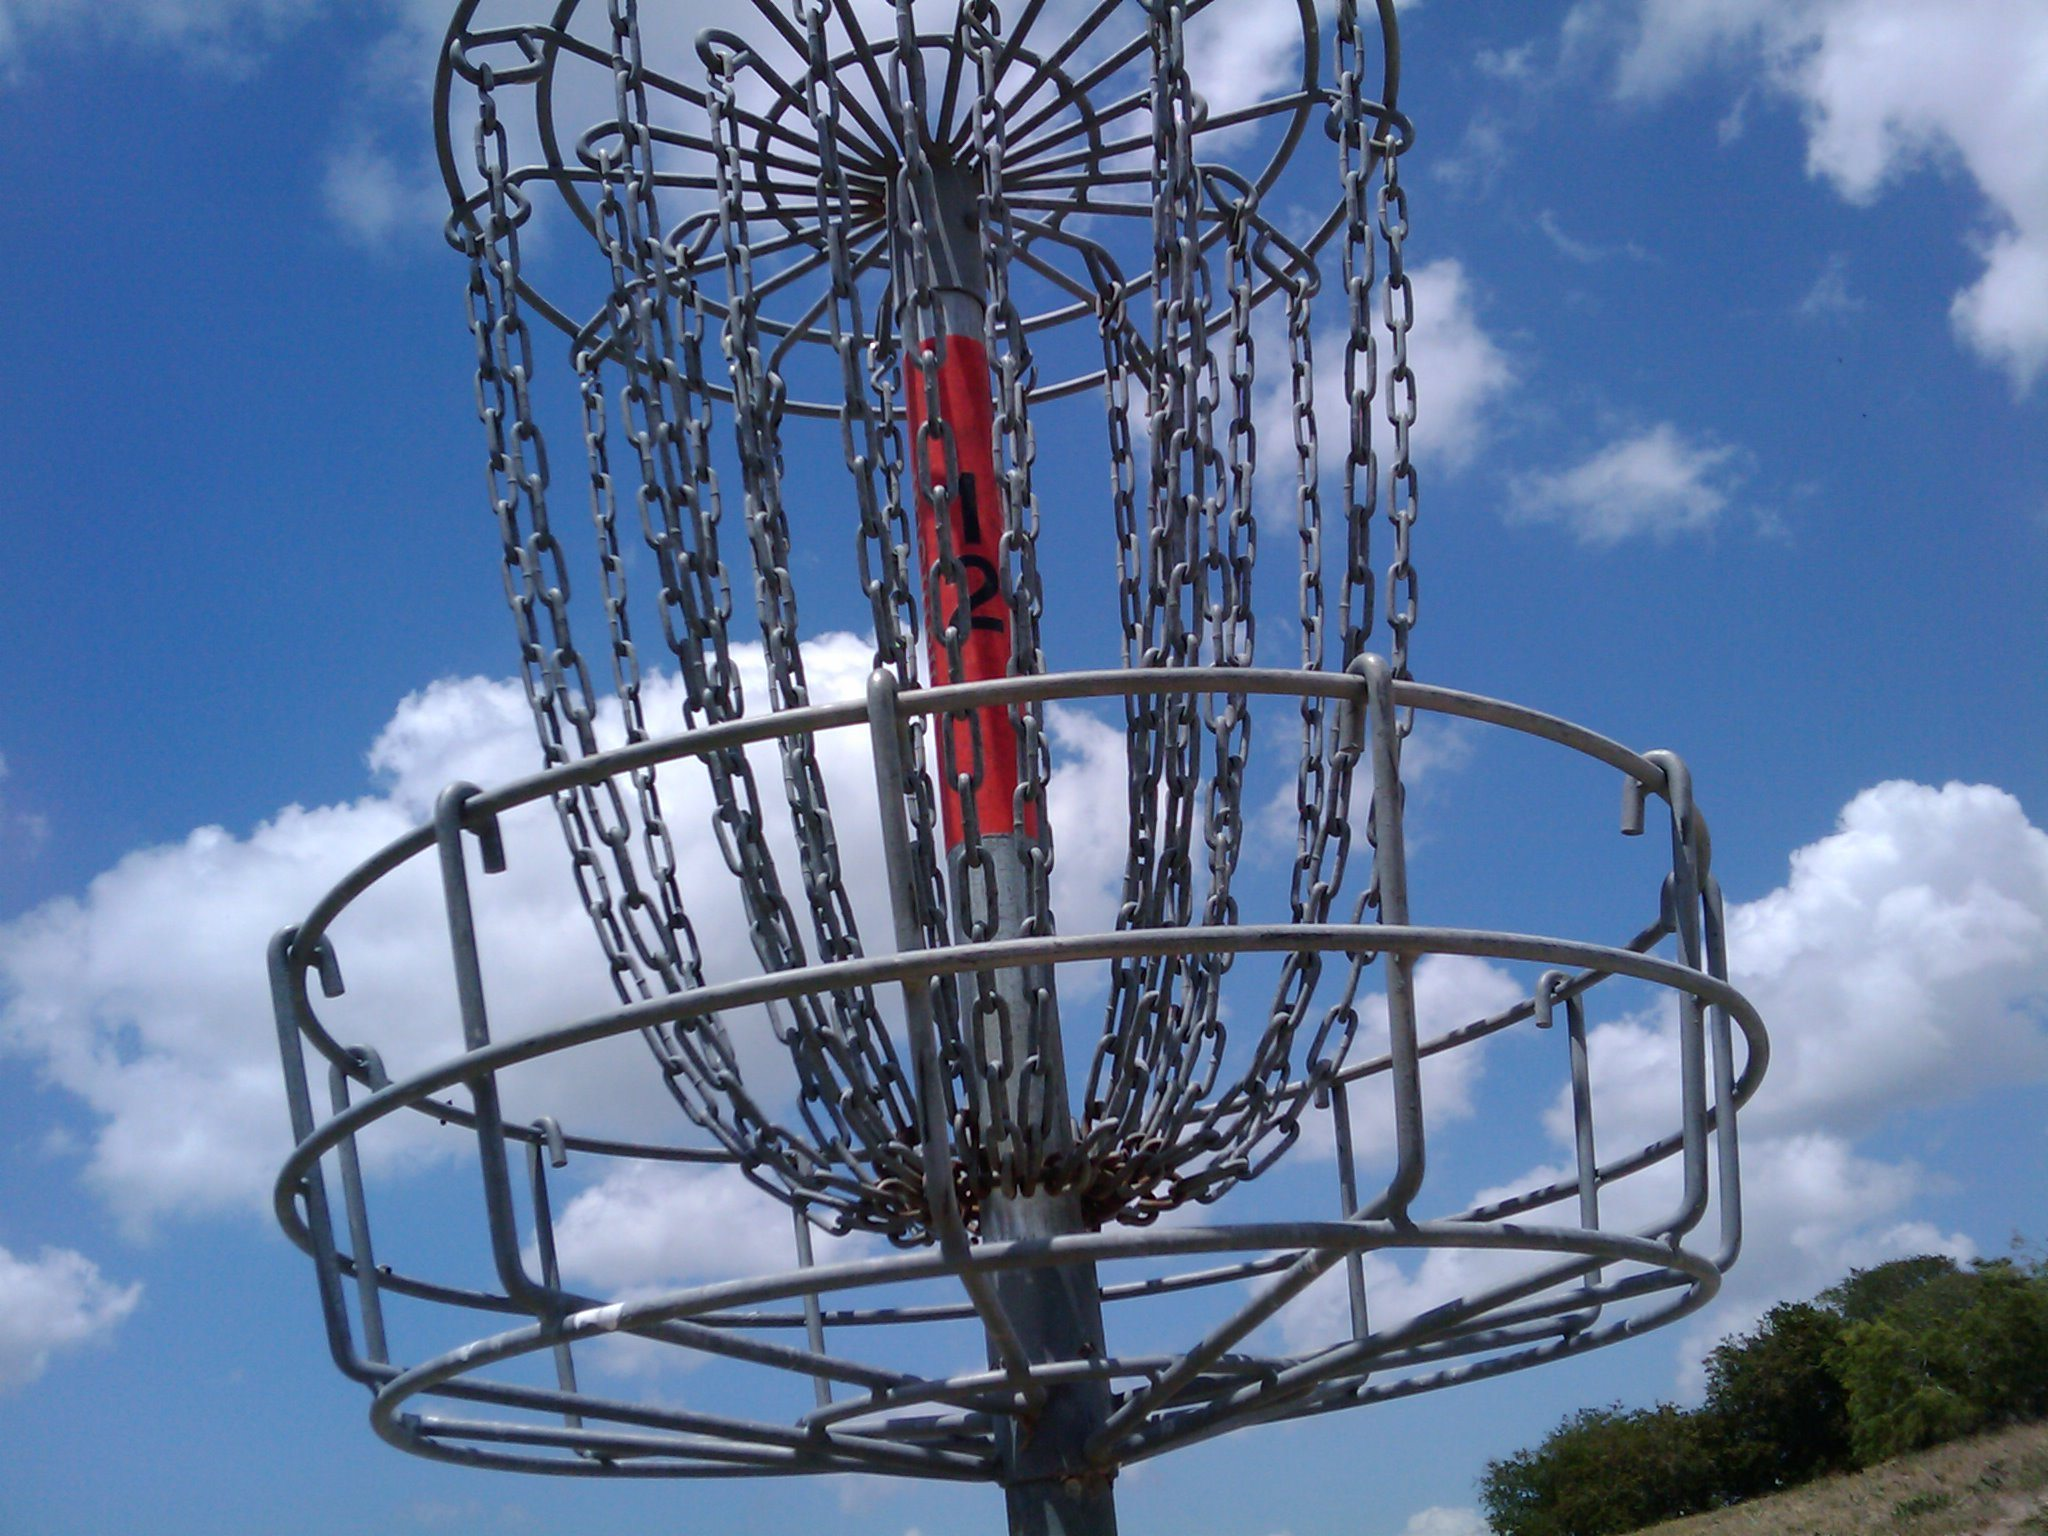 Disc Golf Course Equipment ~ Go for par with frisbee golf this summer drive the nation